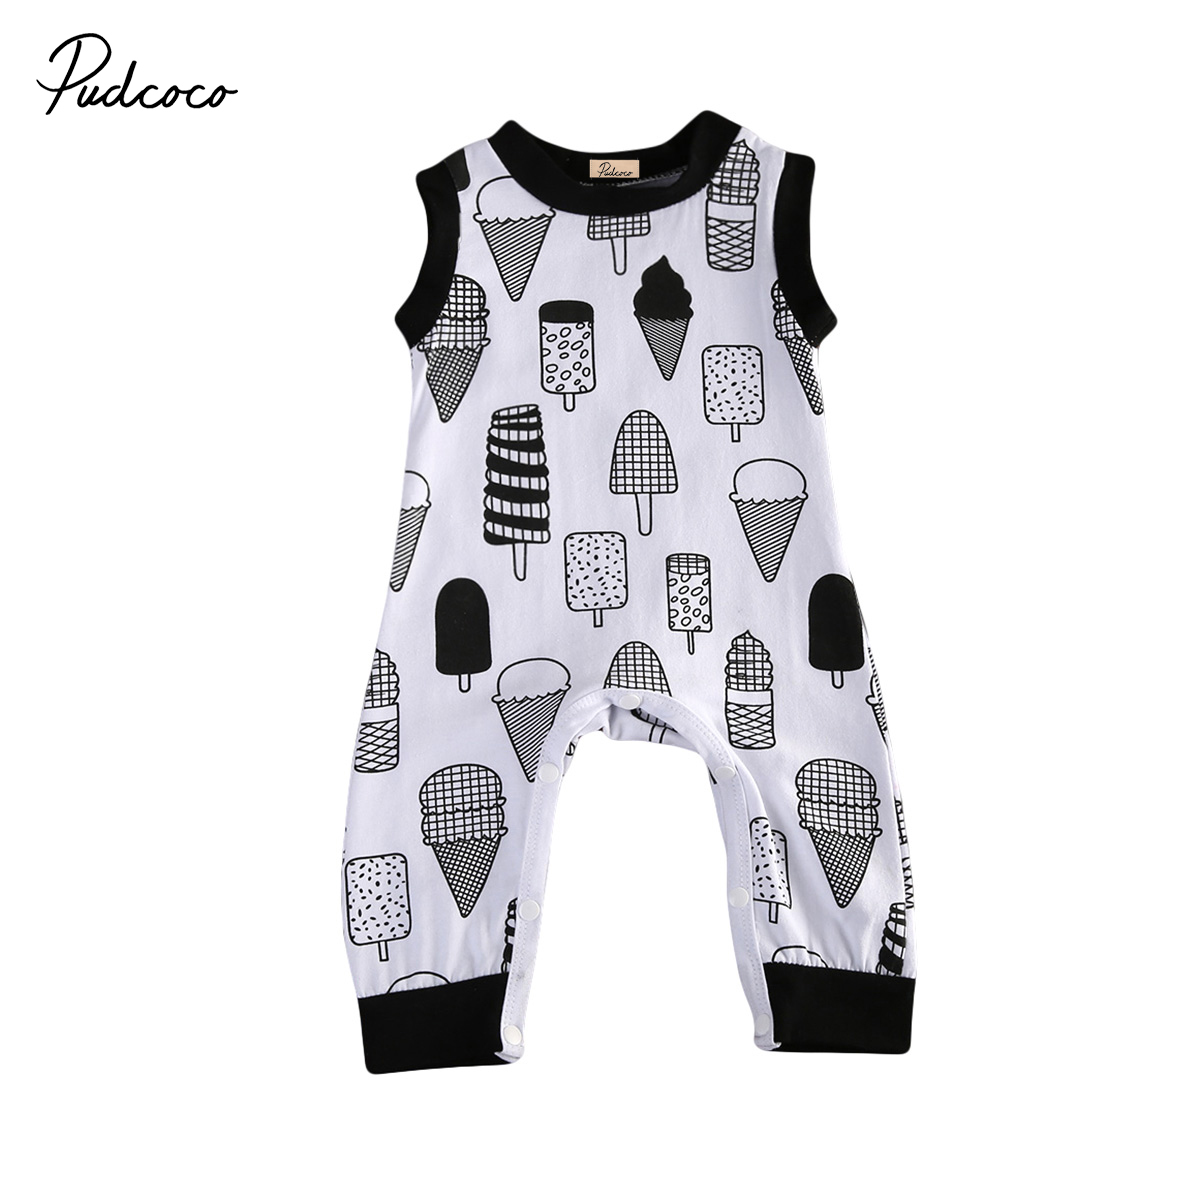 Infant Baby Boys Icecream Romper Clothes Newborn Kids Cotton Romper Jumpsuit sunsuits Outfit